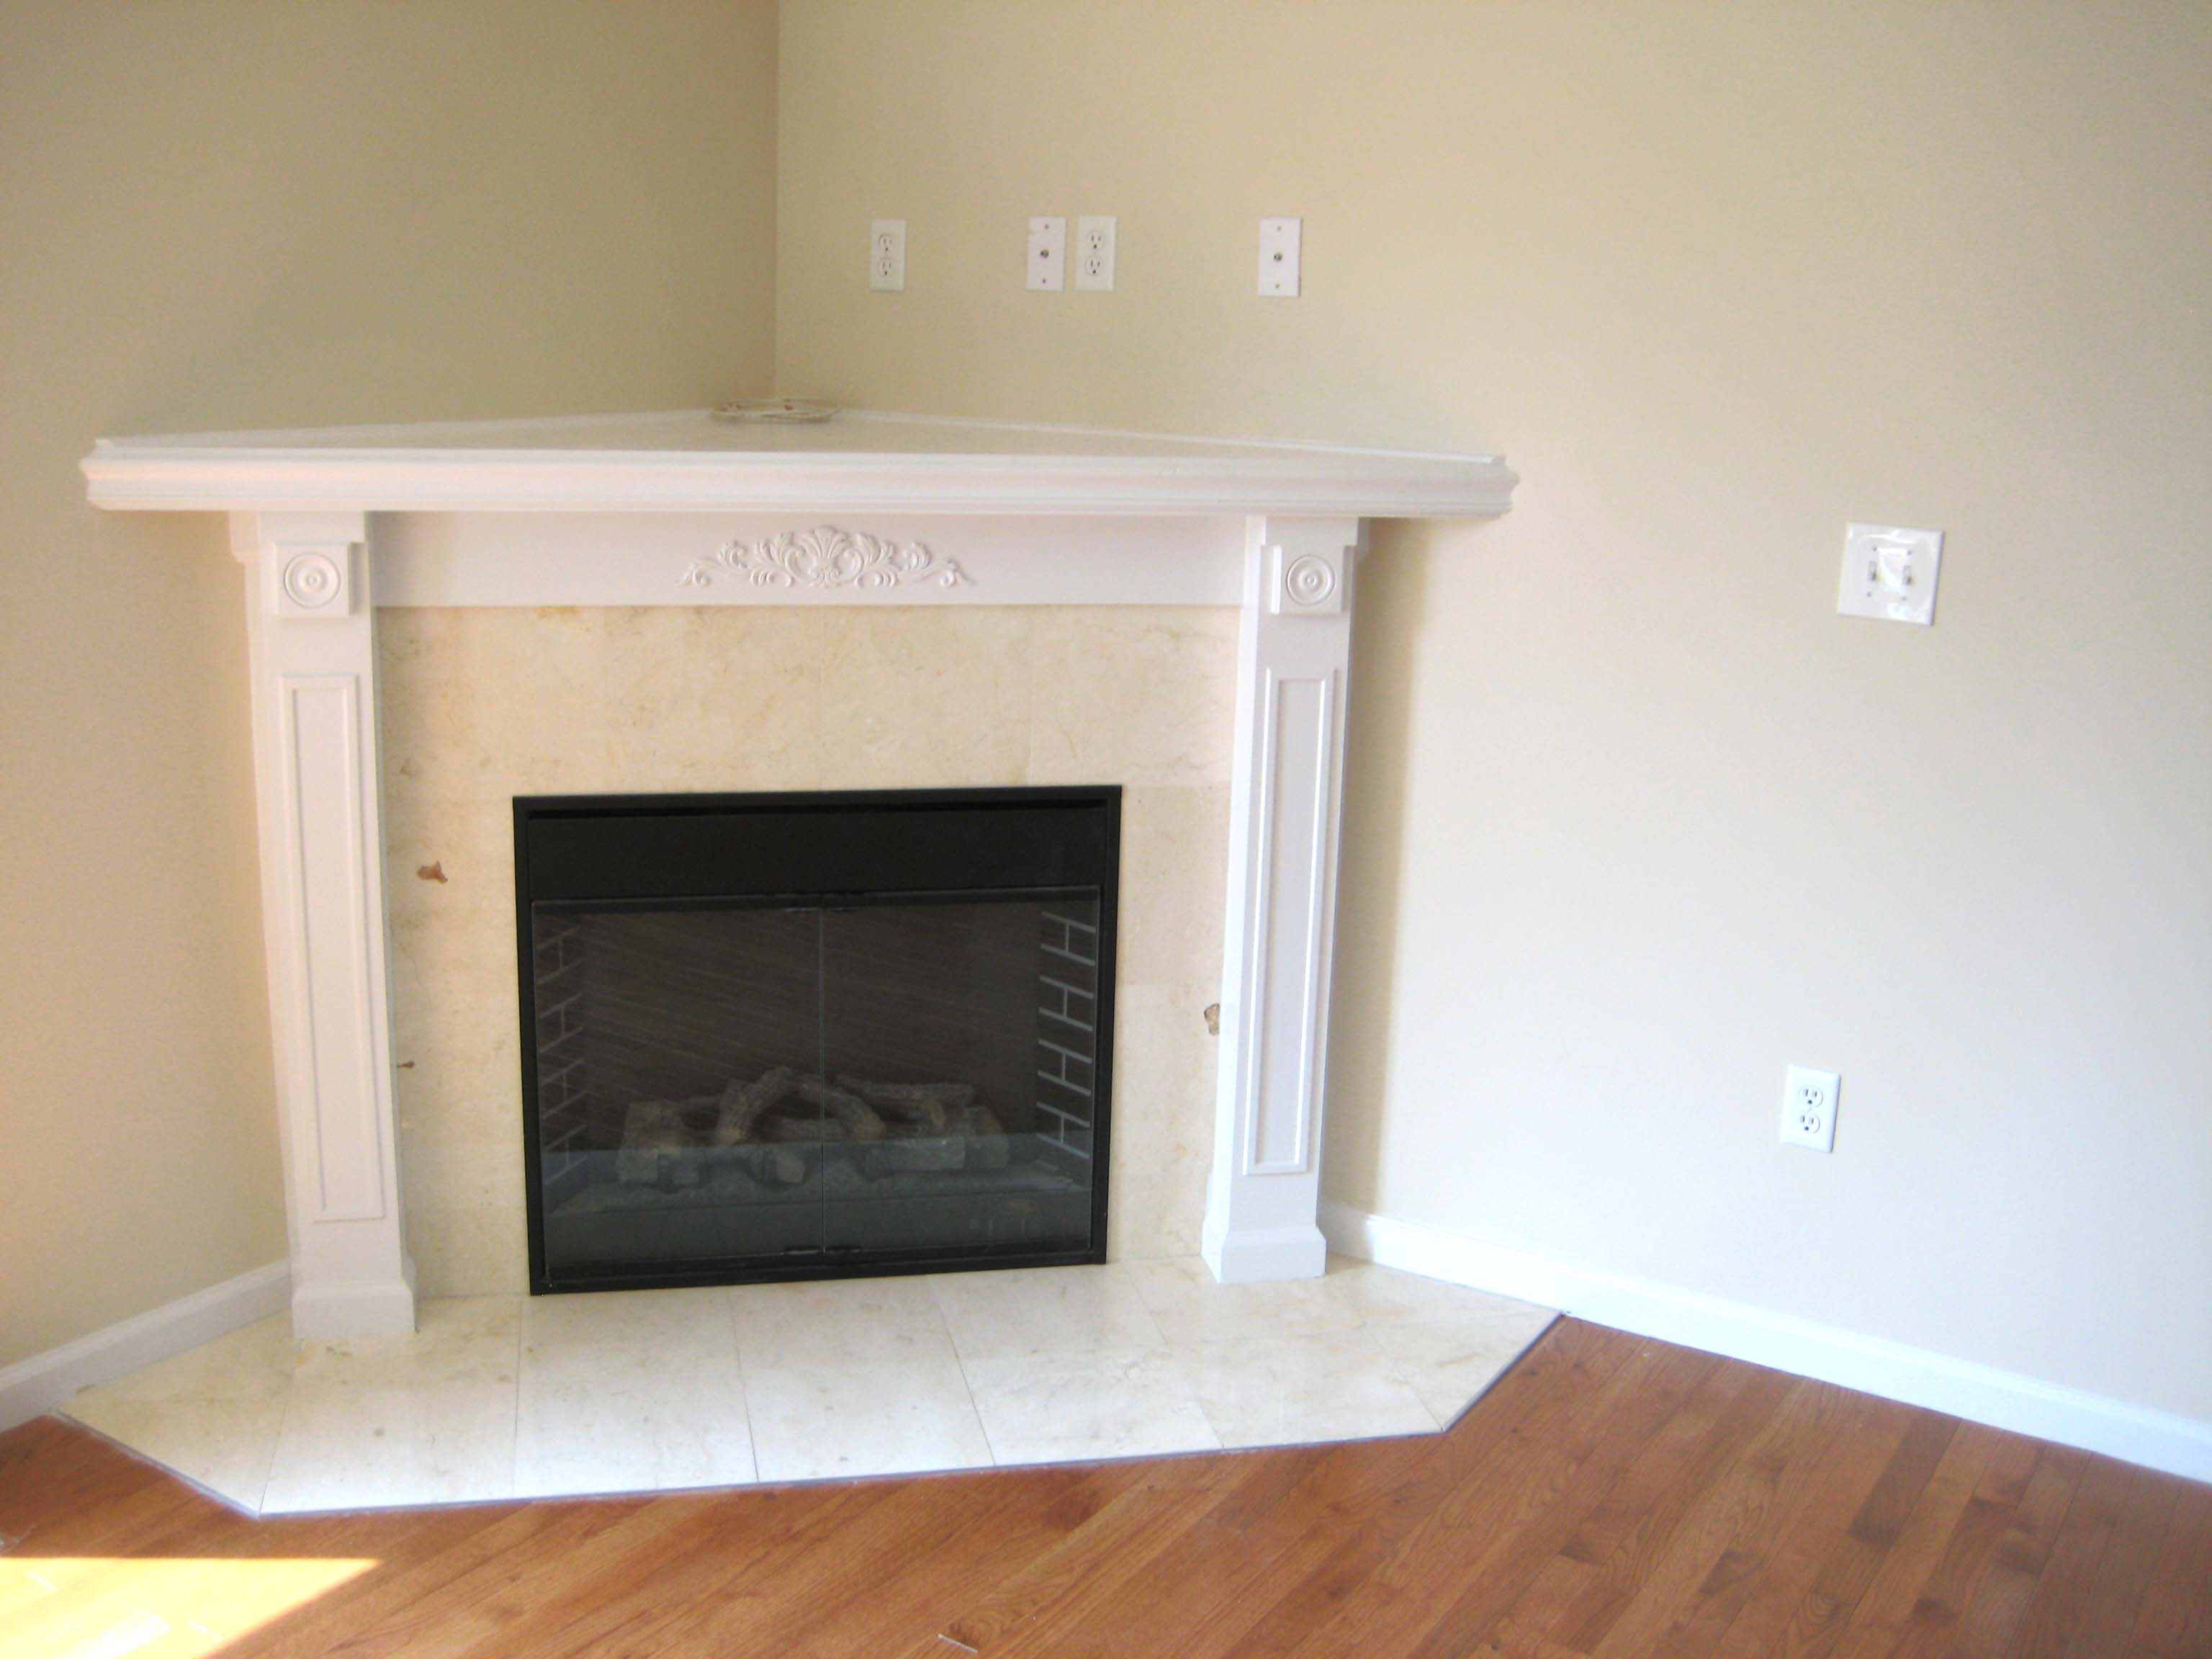 Master Bedroom with Electric Fireplace 3072 x 2304